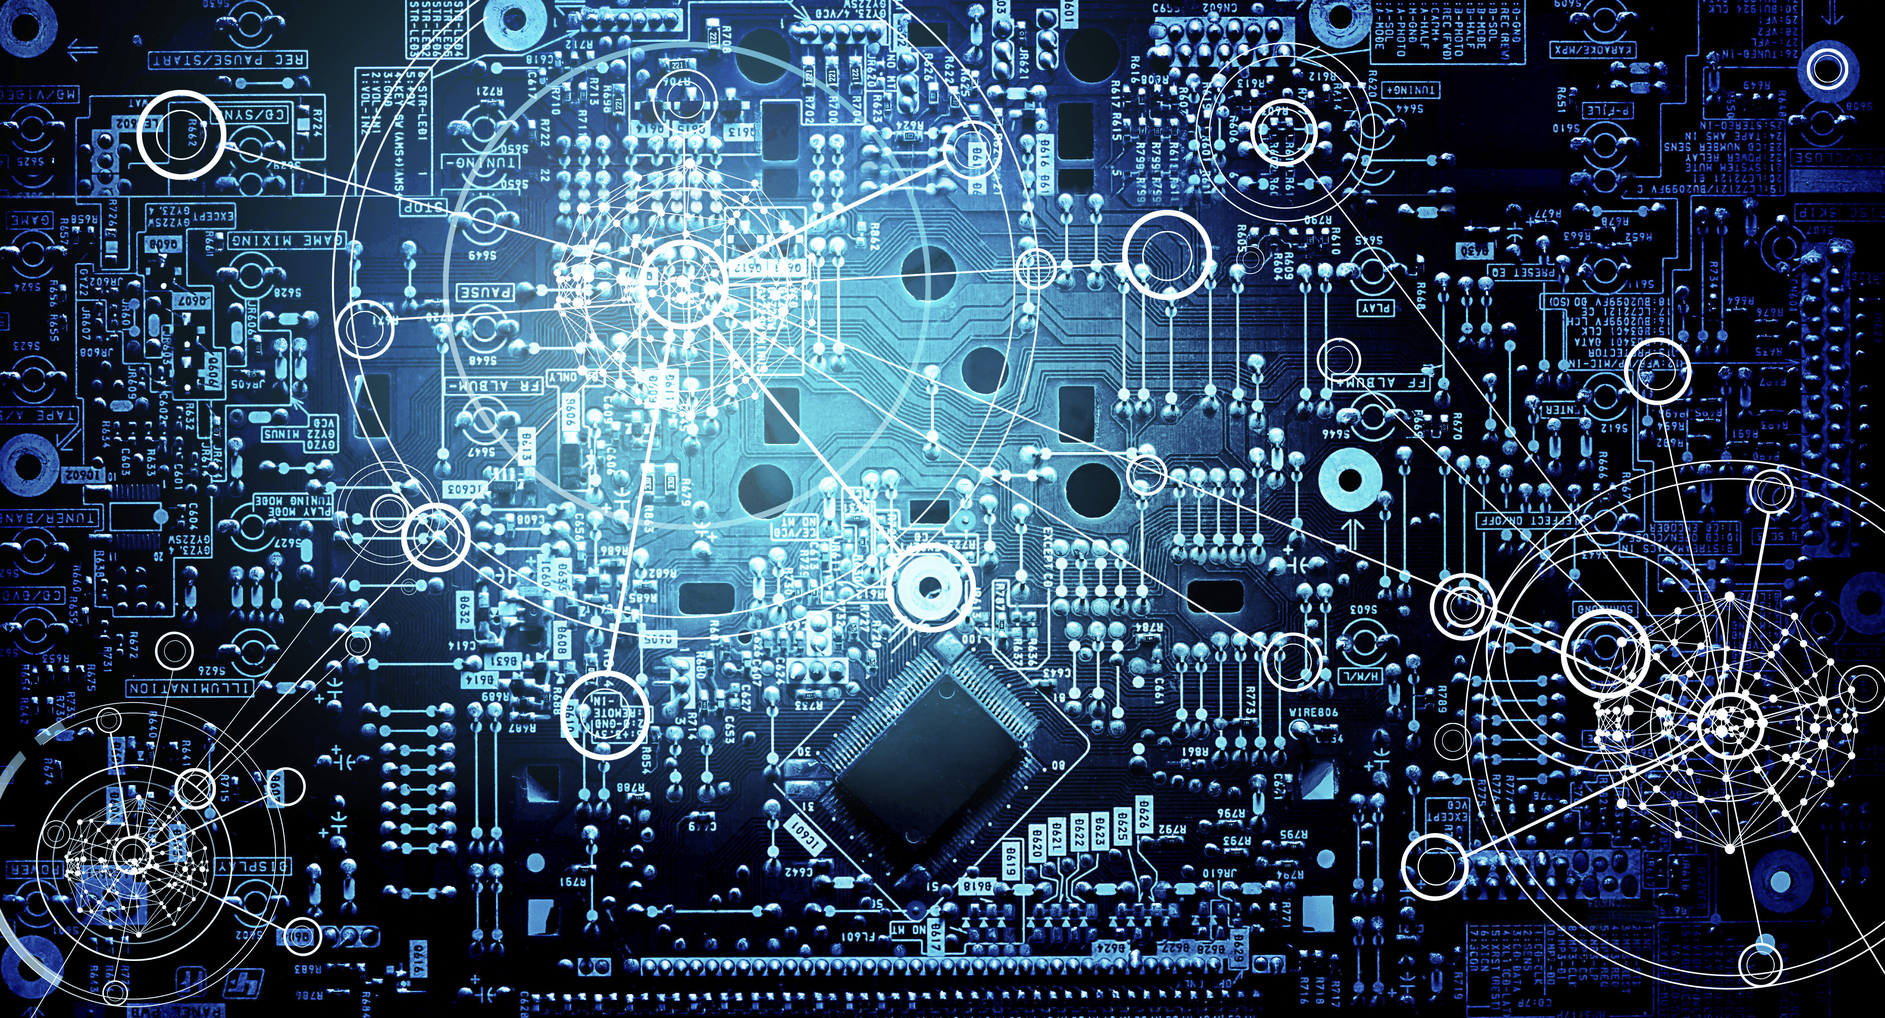 Machine learning, and its subset deep learning, are key methods for the expanding field of AI.